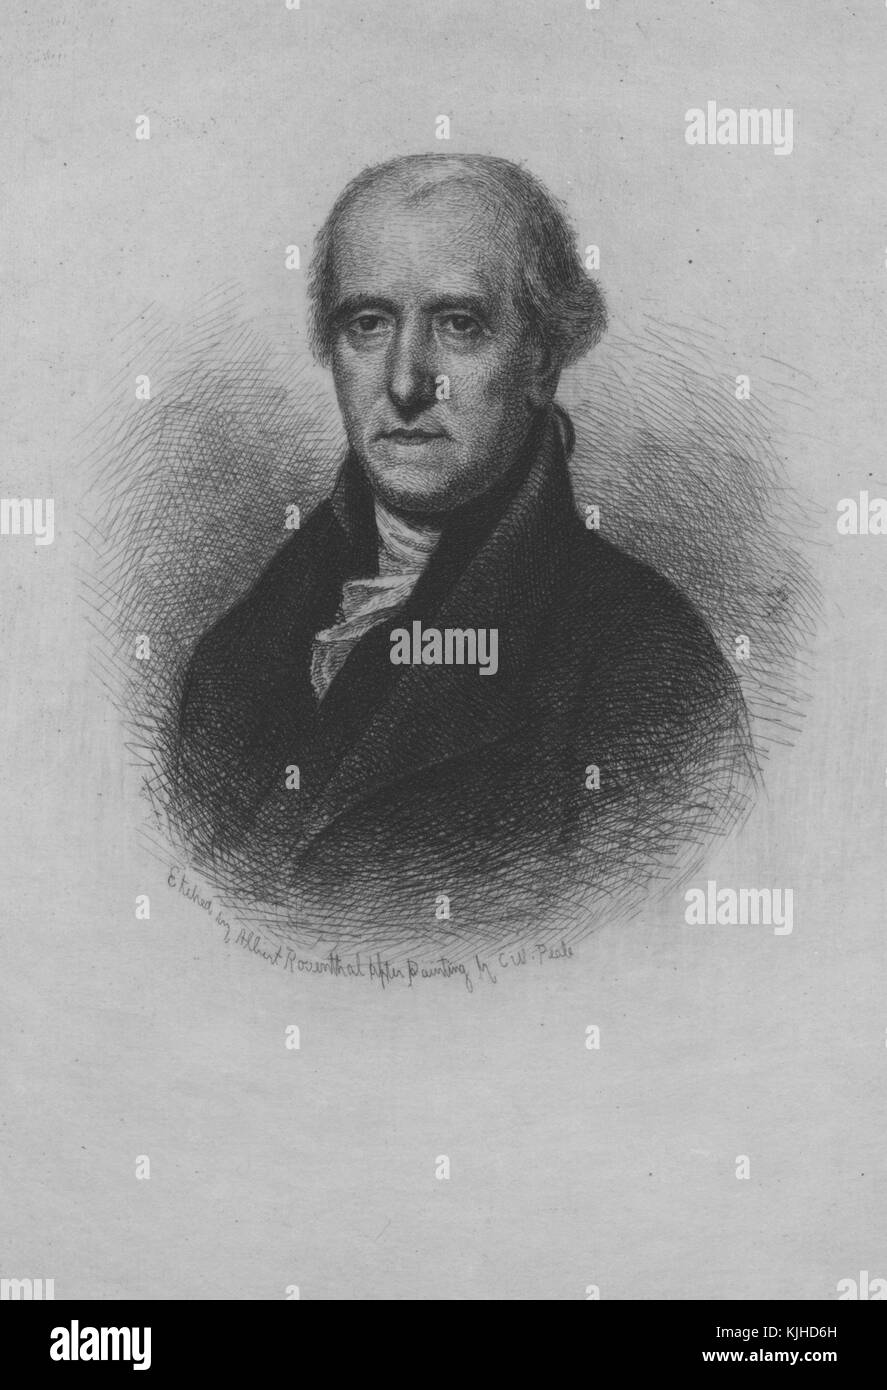 An etching from a portrait of Jared Ingersoll, he was an American lawyer, he served as a delegate from Pennsylvania - Stock Image